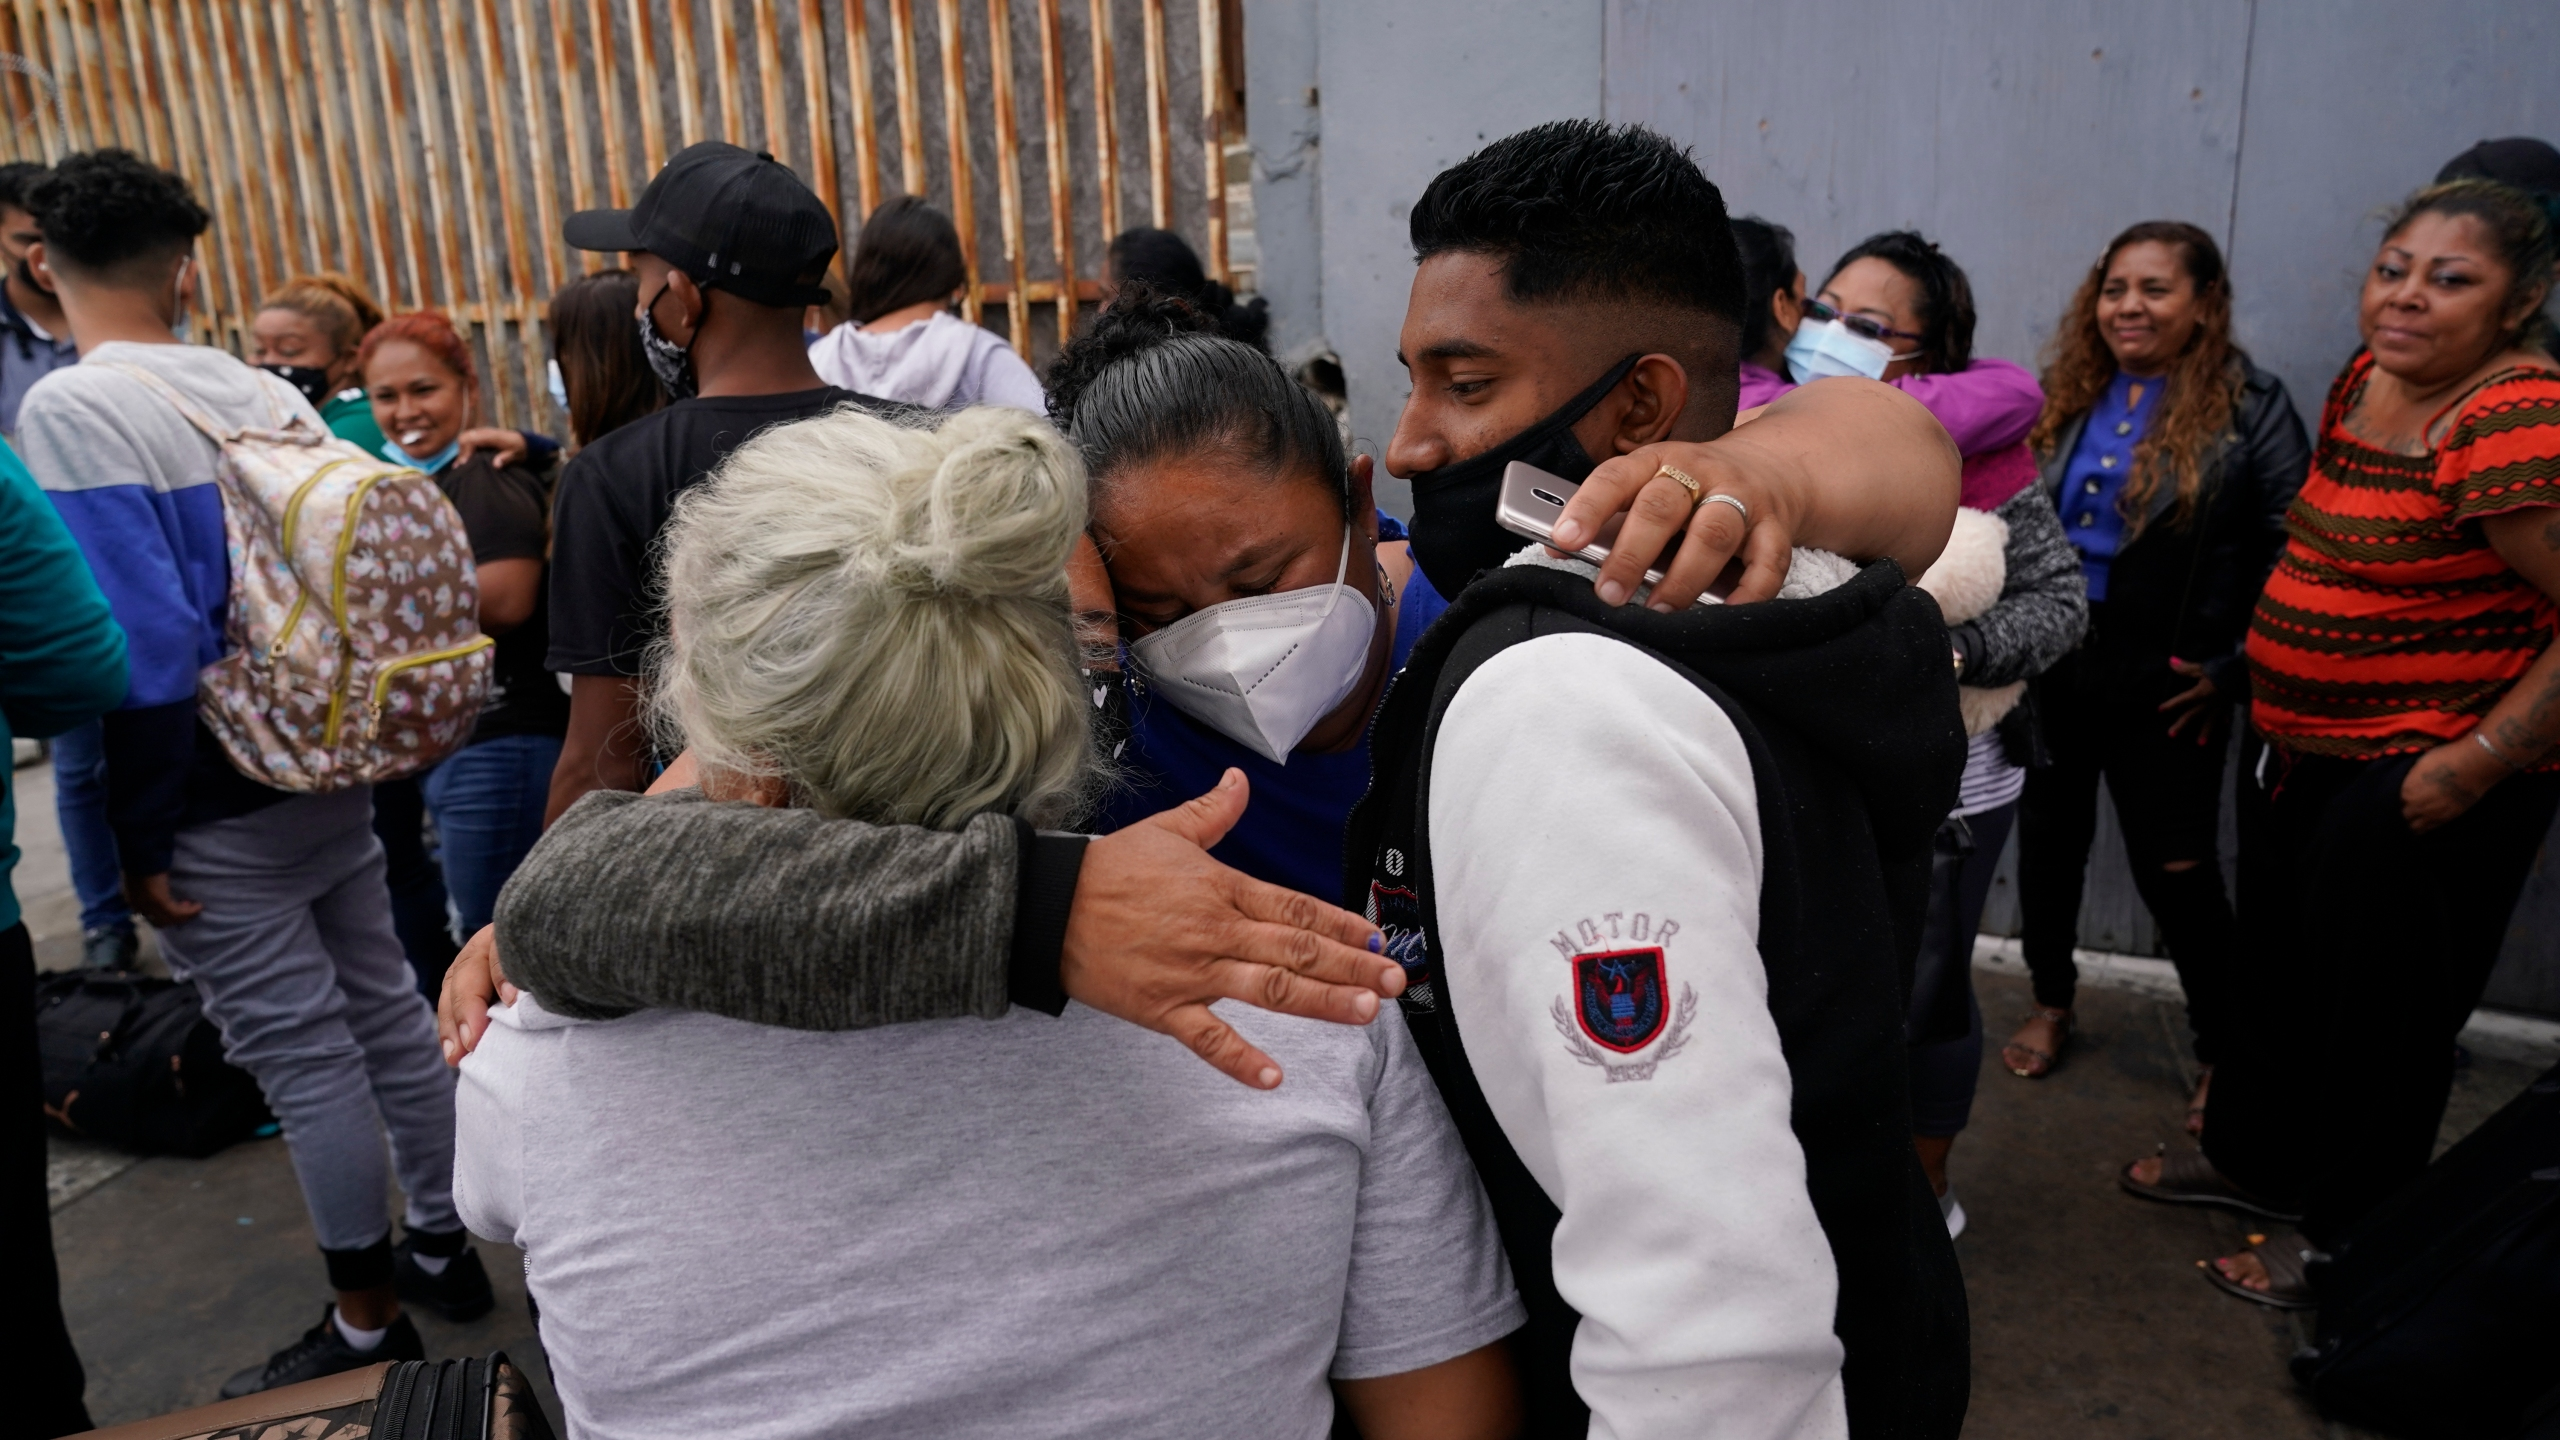 In this July 5, 2021, file photo, Alex Cortillo, right, of Honduras gets a hug from Erika Valladares Ponce, of Honduras, center, and others, as he waits to cross into the United States to begin the asylum process in Tijuana, Mexico. Two nongovernmental organizations said Friday, July 30, 2021, that they are ending cooperation with the Biden Administration to identify the most vulnerable migrants waiting in Mexico to be admitted to the United States to seek asylum. (AP Photo/Gregory Bull, File)